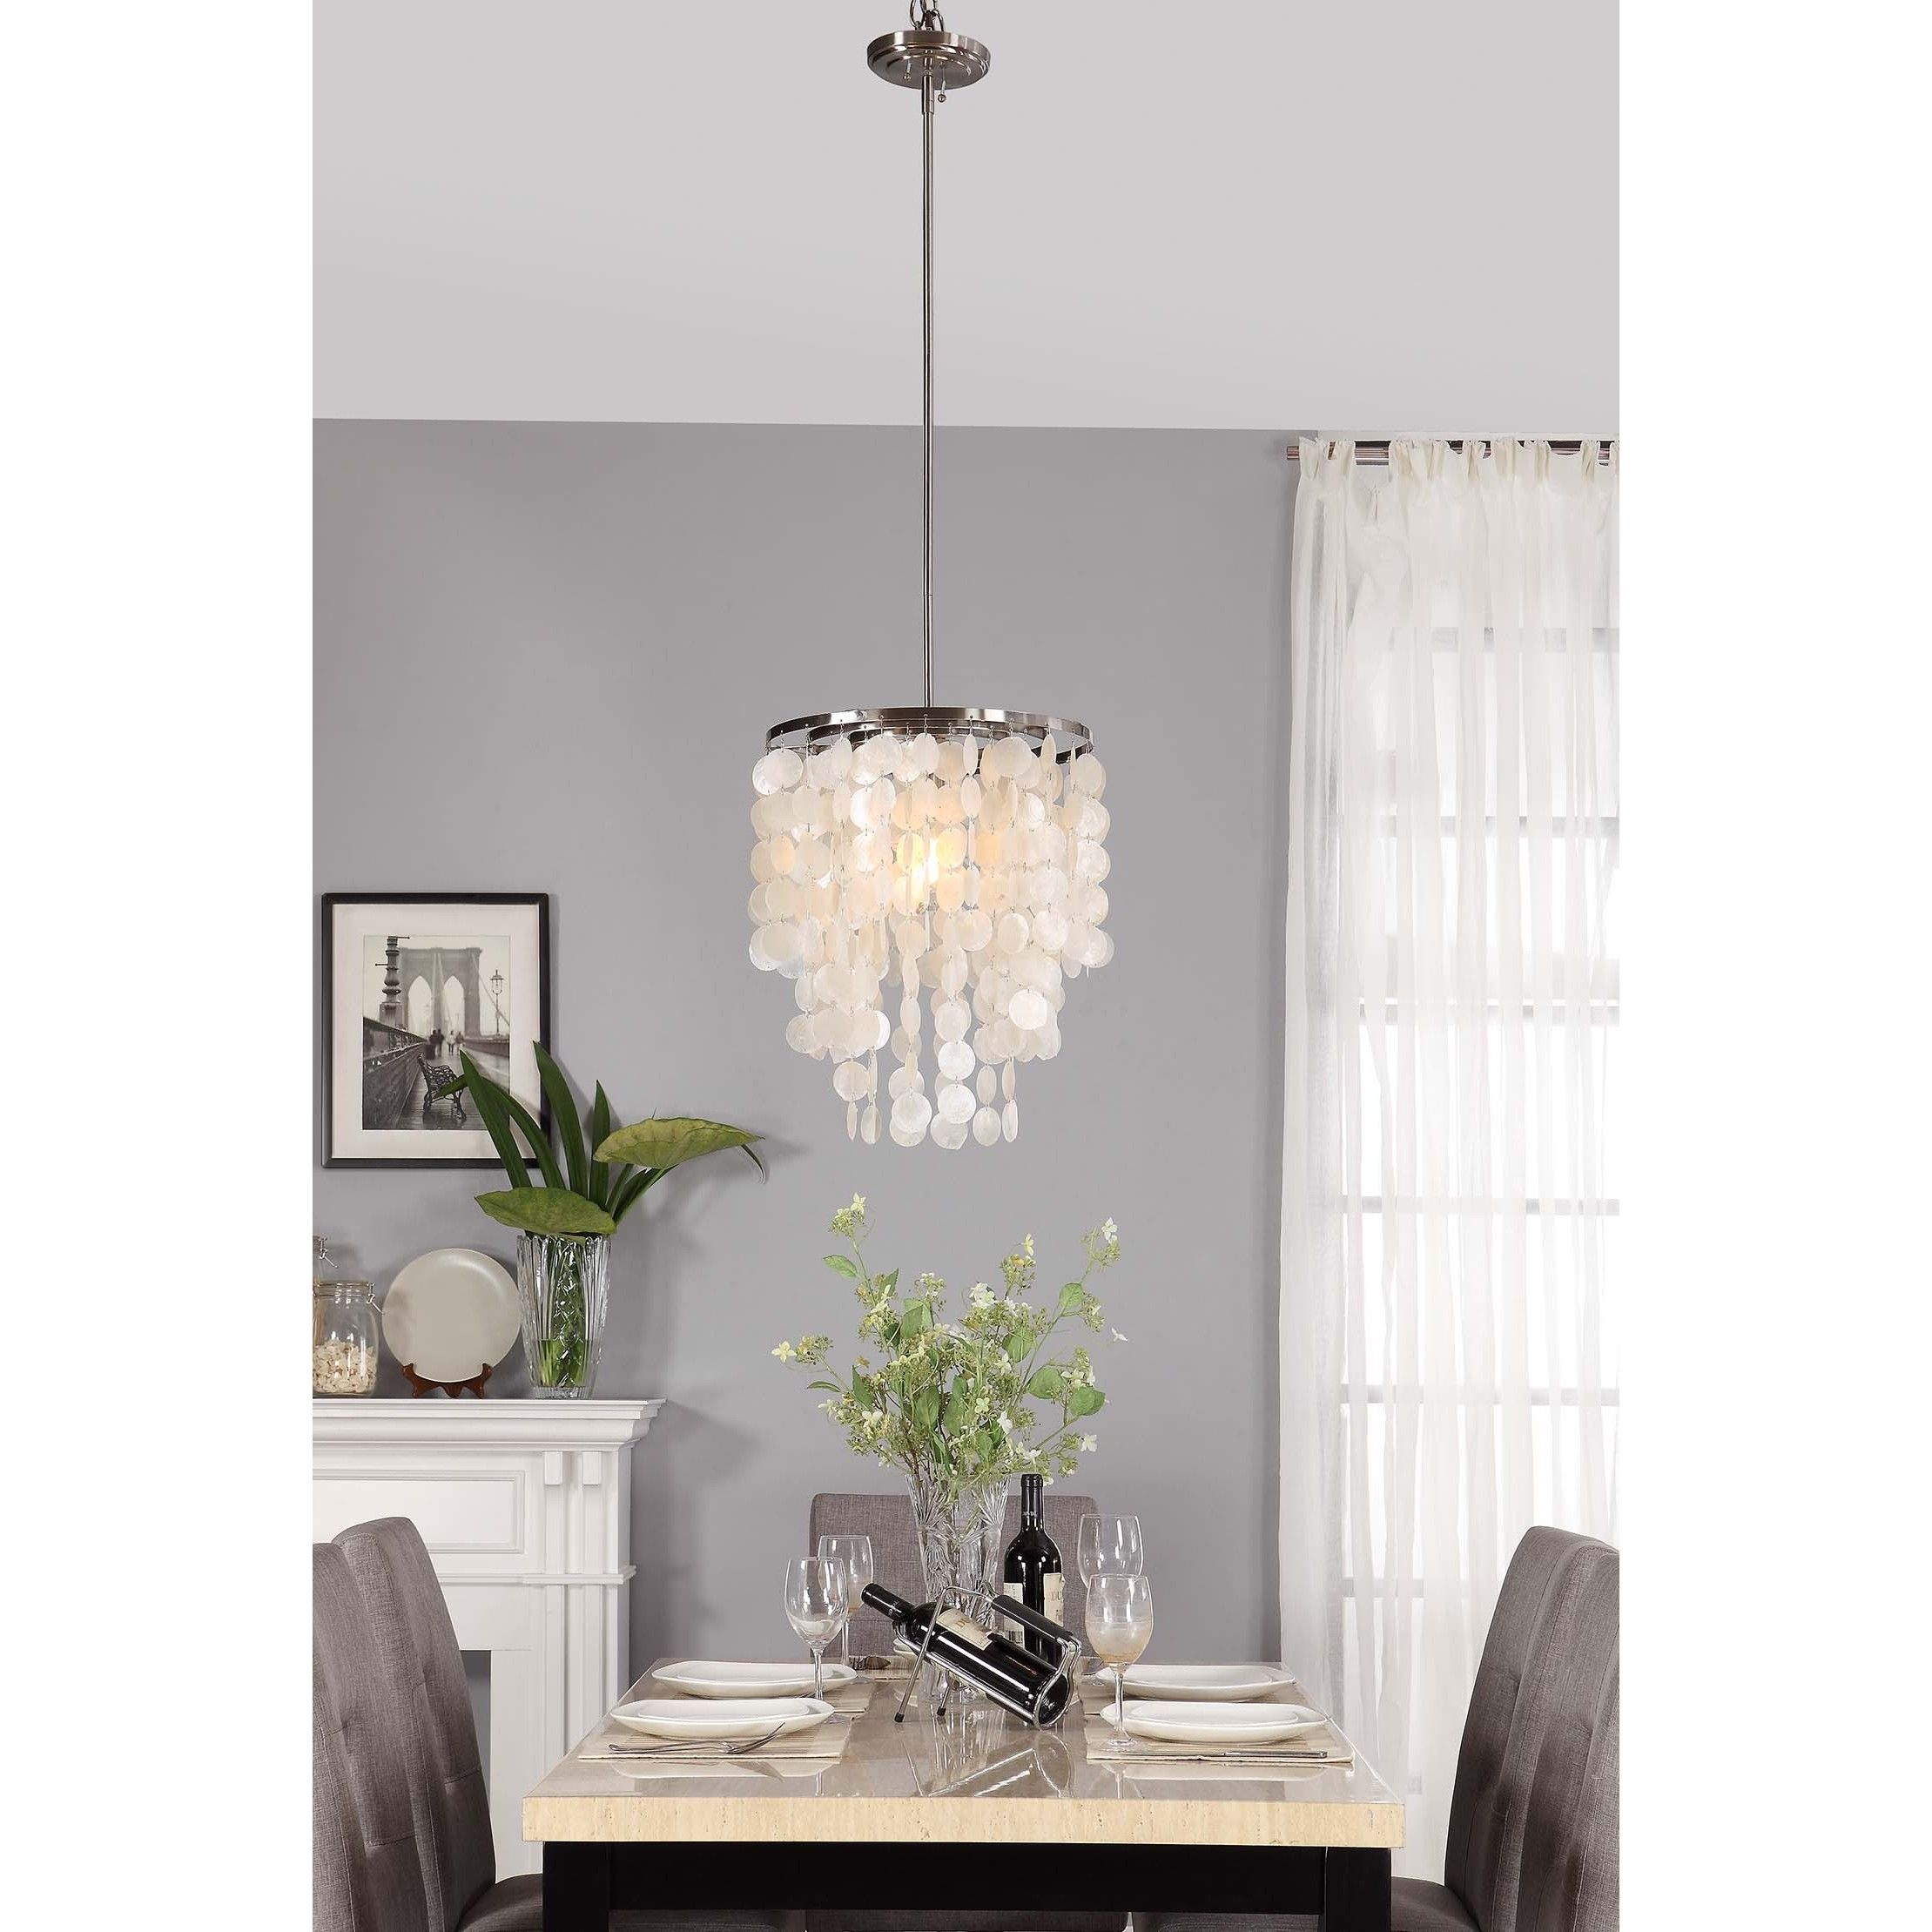 Refined but casual and fun this dangling chandelier style Athena